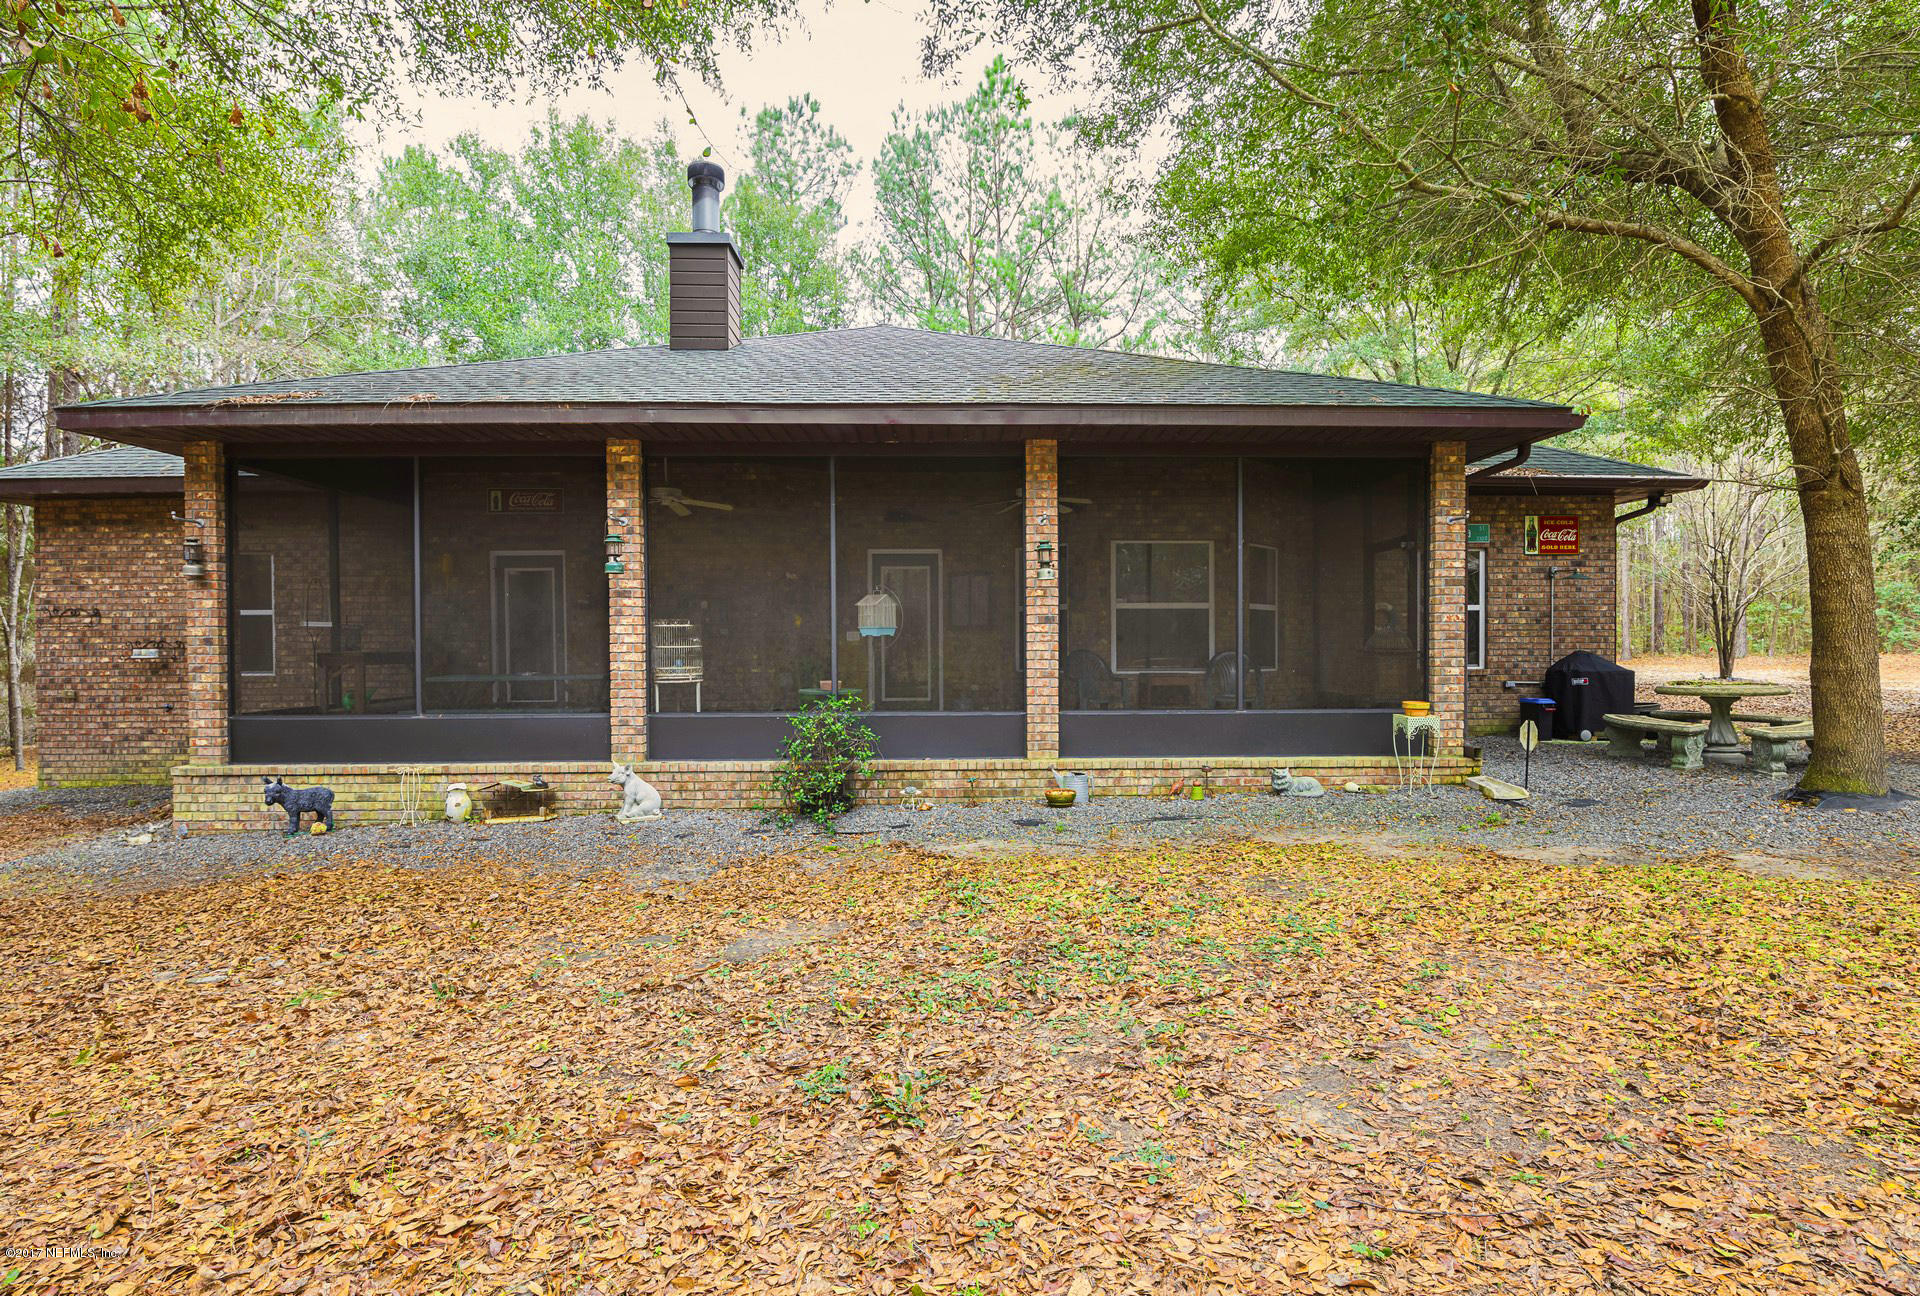 468 ORMOND WITT, LAKE CITY, FLORIDA 32025, 2 Bedrooms Bedrooms, ,2 BathroomsBathrooms,Residential - single family,For sale,ORMOND WITT,865146